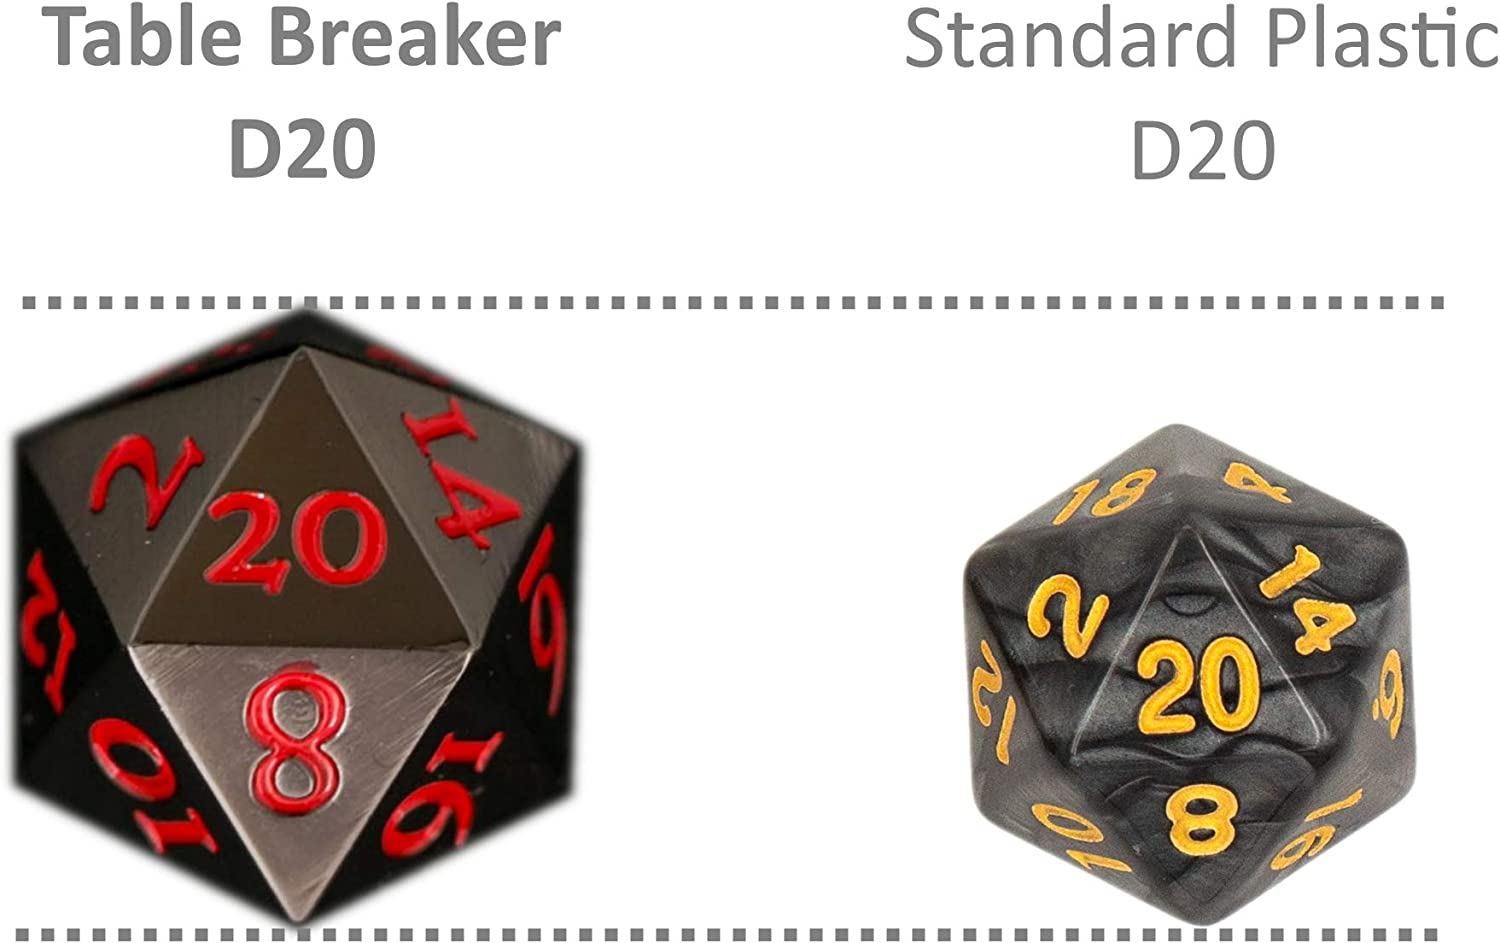 Extra Large Solid Metal Black D20 Dice 20 face with Red Numbers Extra Heavy DND Dice Pathfinder Call of Cthulu Standard Dice Dungeons and Dragons Tabletop RPG